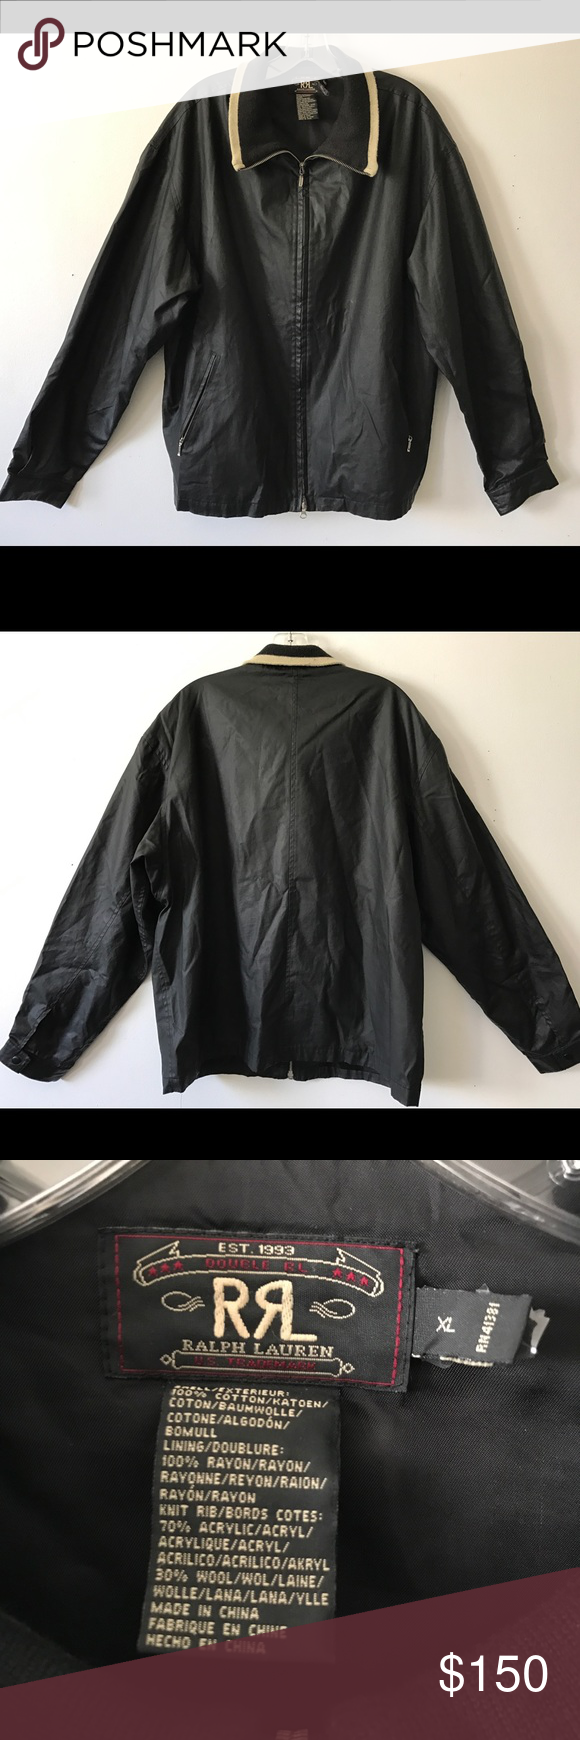 RRL Ralph Lauren Coated Cotton Bomber Jacket XL Excellent condition RRL Ralph Lauren Men's coated cotton bomber jacket with wool blend ribbed  collar. Soft, silky coated cotton in black has a sheen. Fully lined with interior chest pocket. Wool blend ribbed collar has contrast stripe detail in beige. 2 front Zip pockets with YKK silver zipper pulls. Button close cuffs. Size XL. Retail $650 Ralph Lauren RRL Jackets & Coats Bomber & Varsity